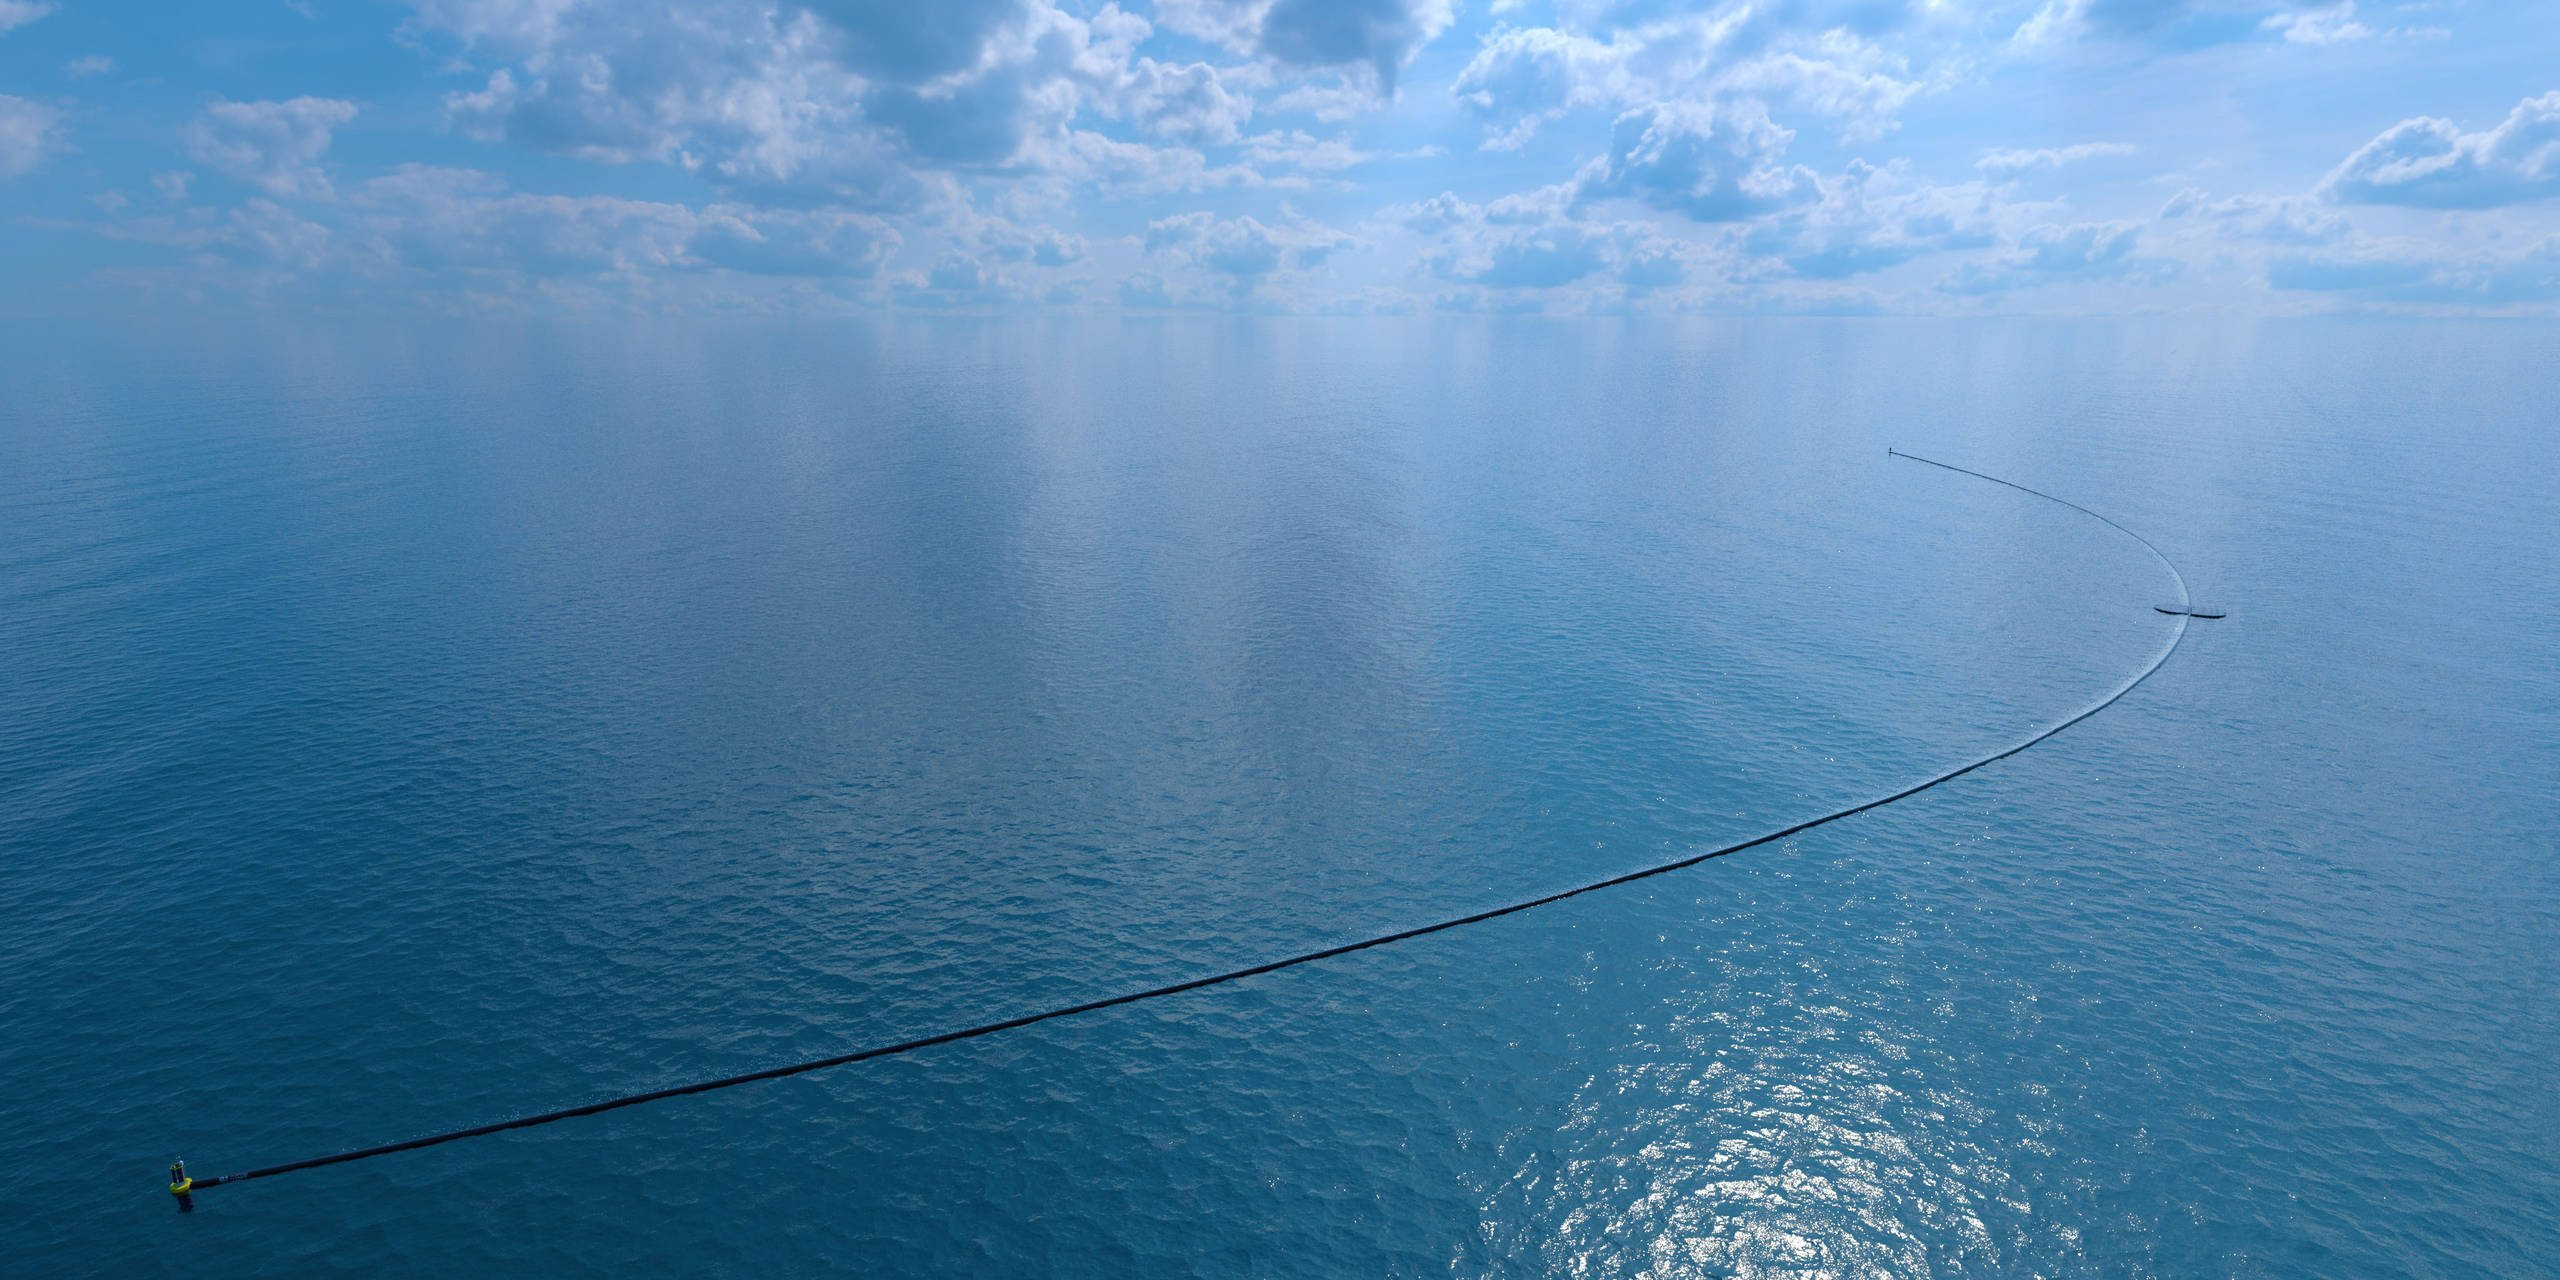 Image: Artists rendering of the Ocean Cleanup booms from the air